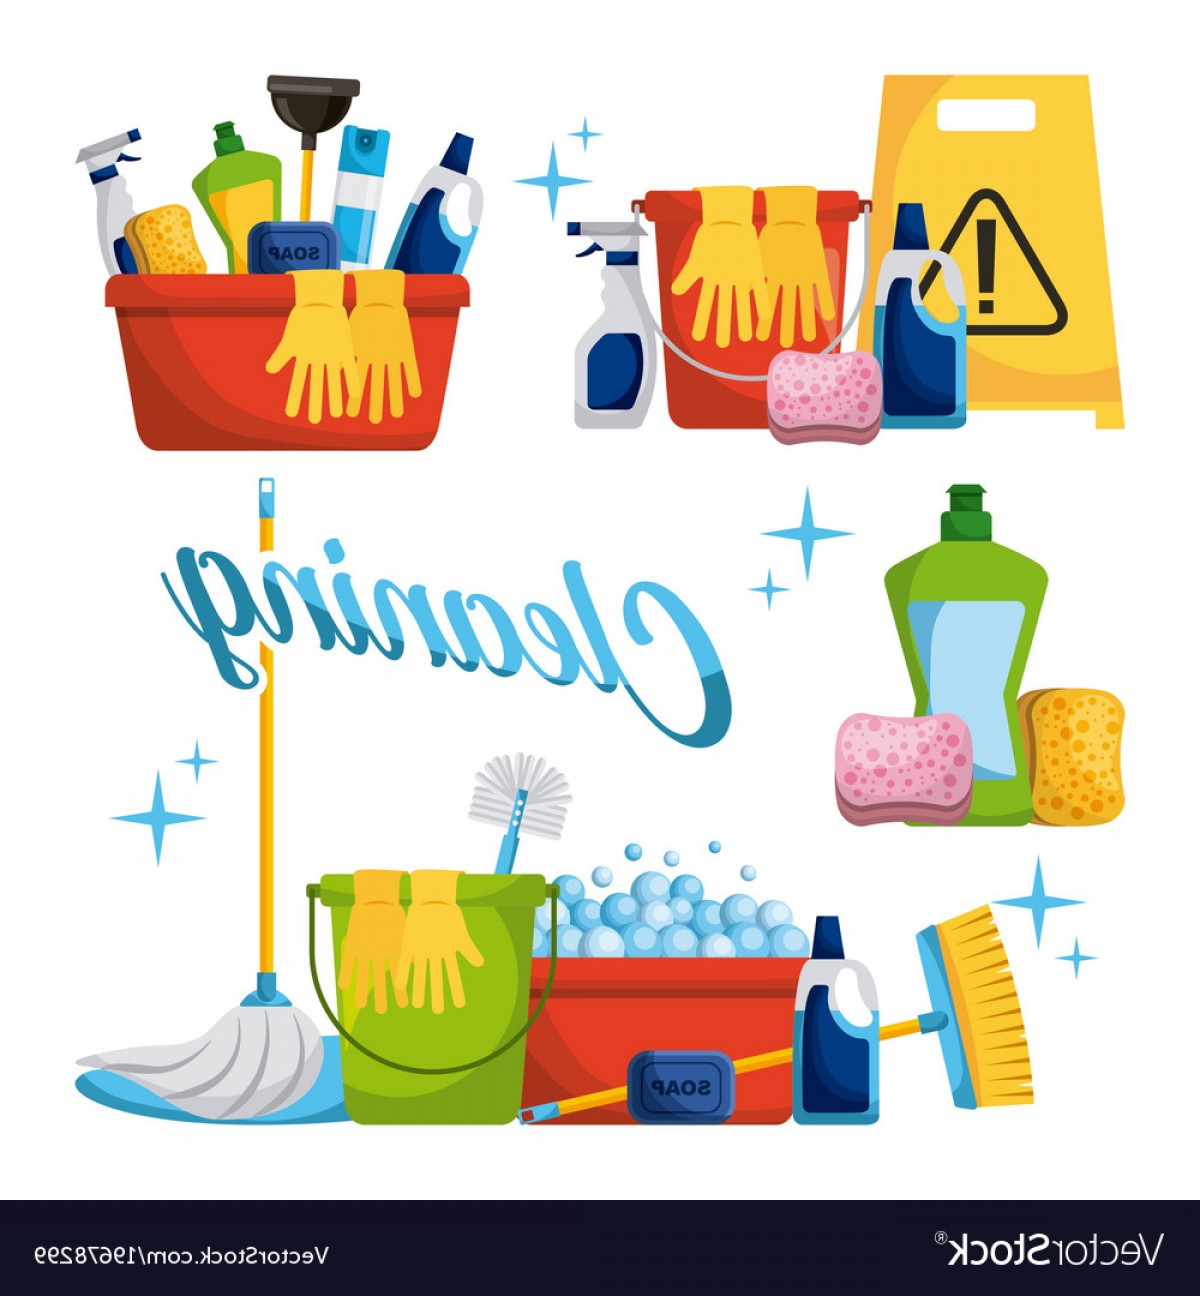 Mop And Bucket Clip Art Vector: Cleaning Elements Set With Brooms Bucket Mop Spray Vector